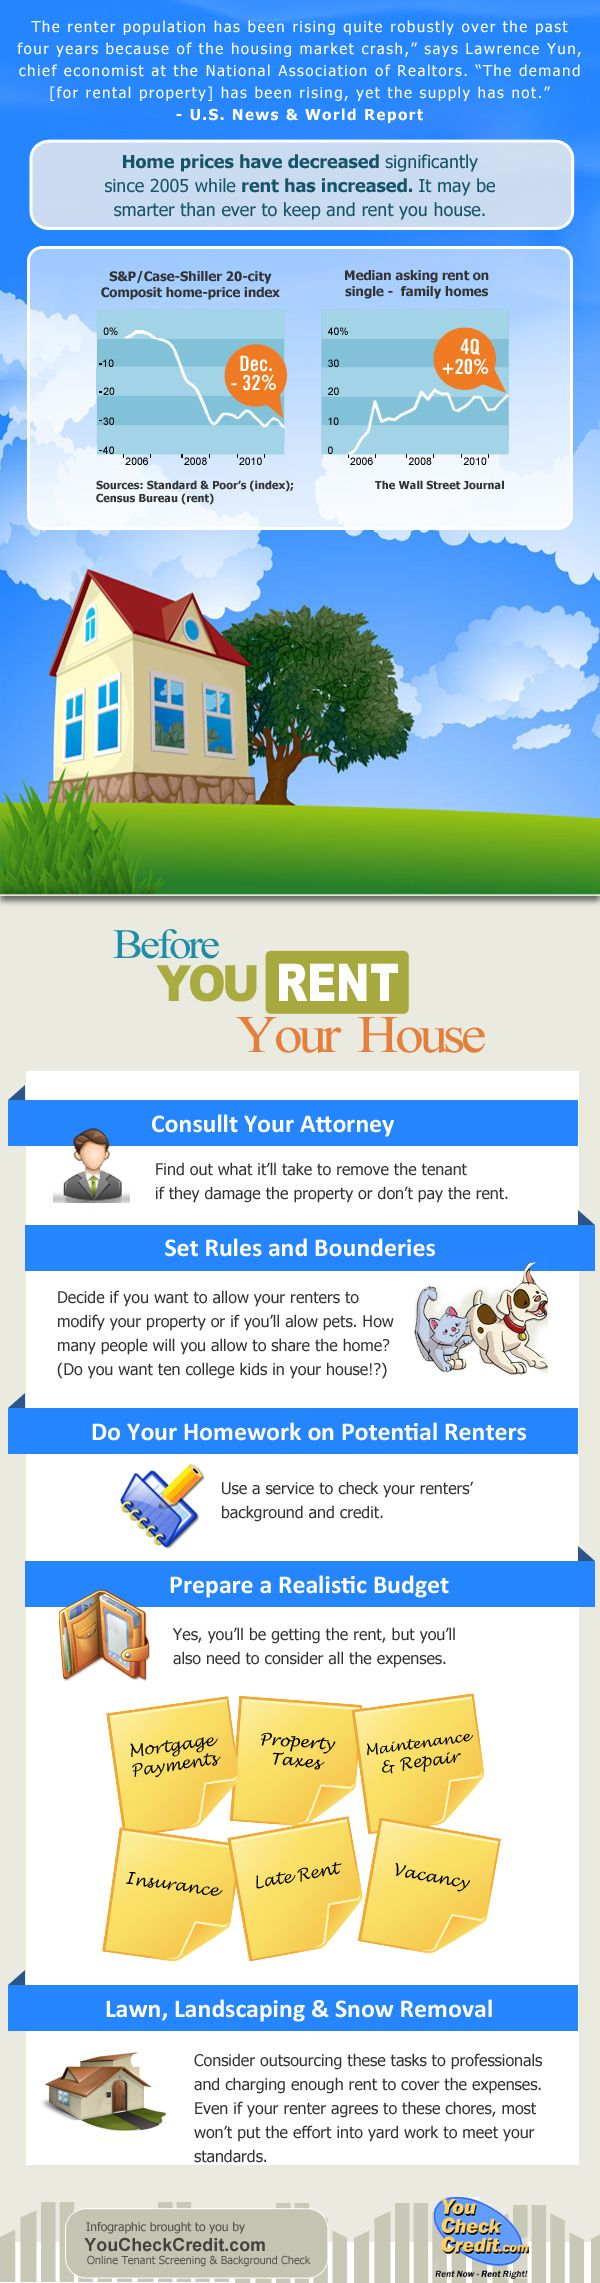 There's never been a better time to rent your house. The demand for rental property is high, but the supply is not. While home prices drop, rent increases. If you are in a position to be a landlord, it may be smarter than ever to keep and rent your house. YouCheckCredit.com has created this infographic to help you prepare to rent your house.  By following these simple steps, you'll be more prepared to work with your renters.